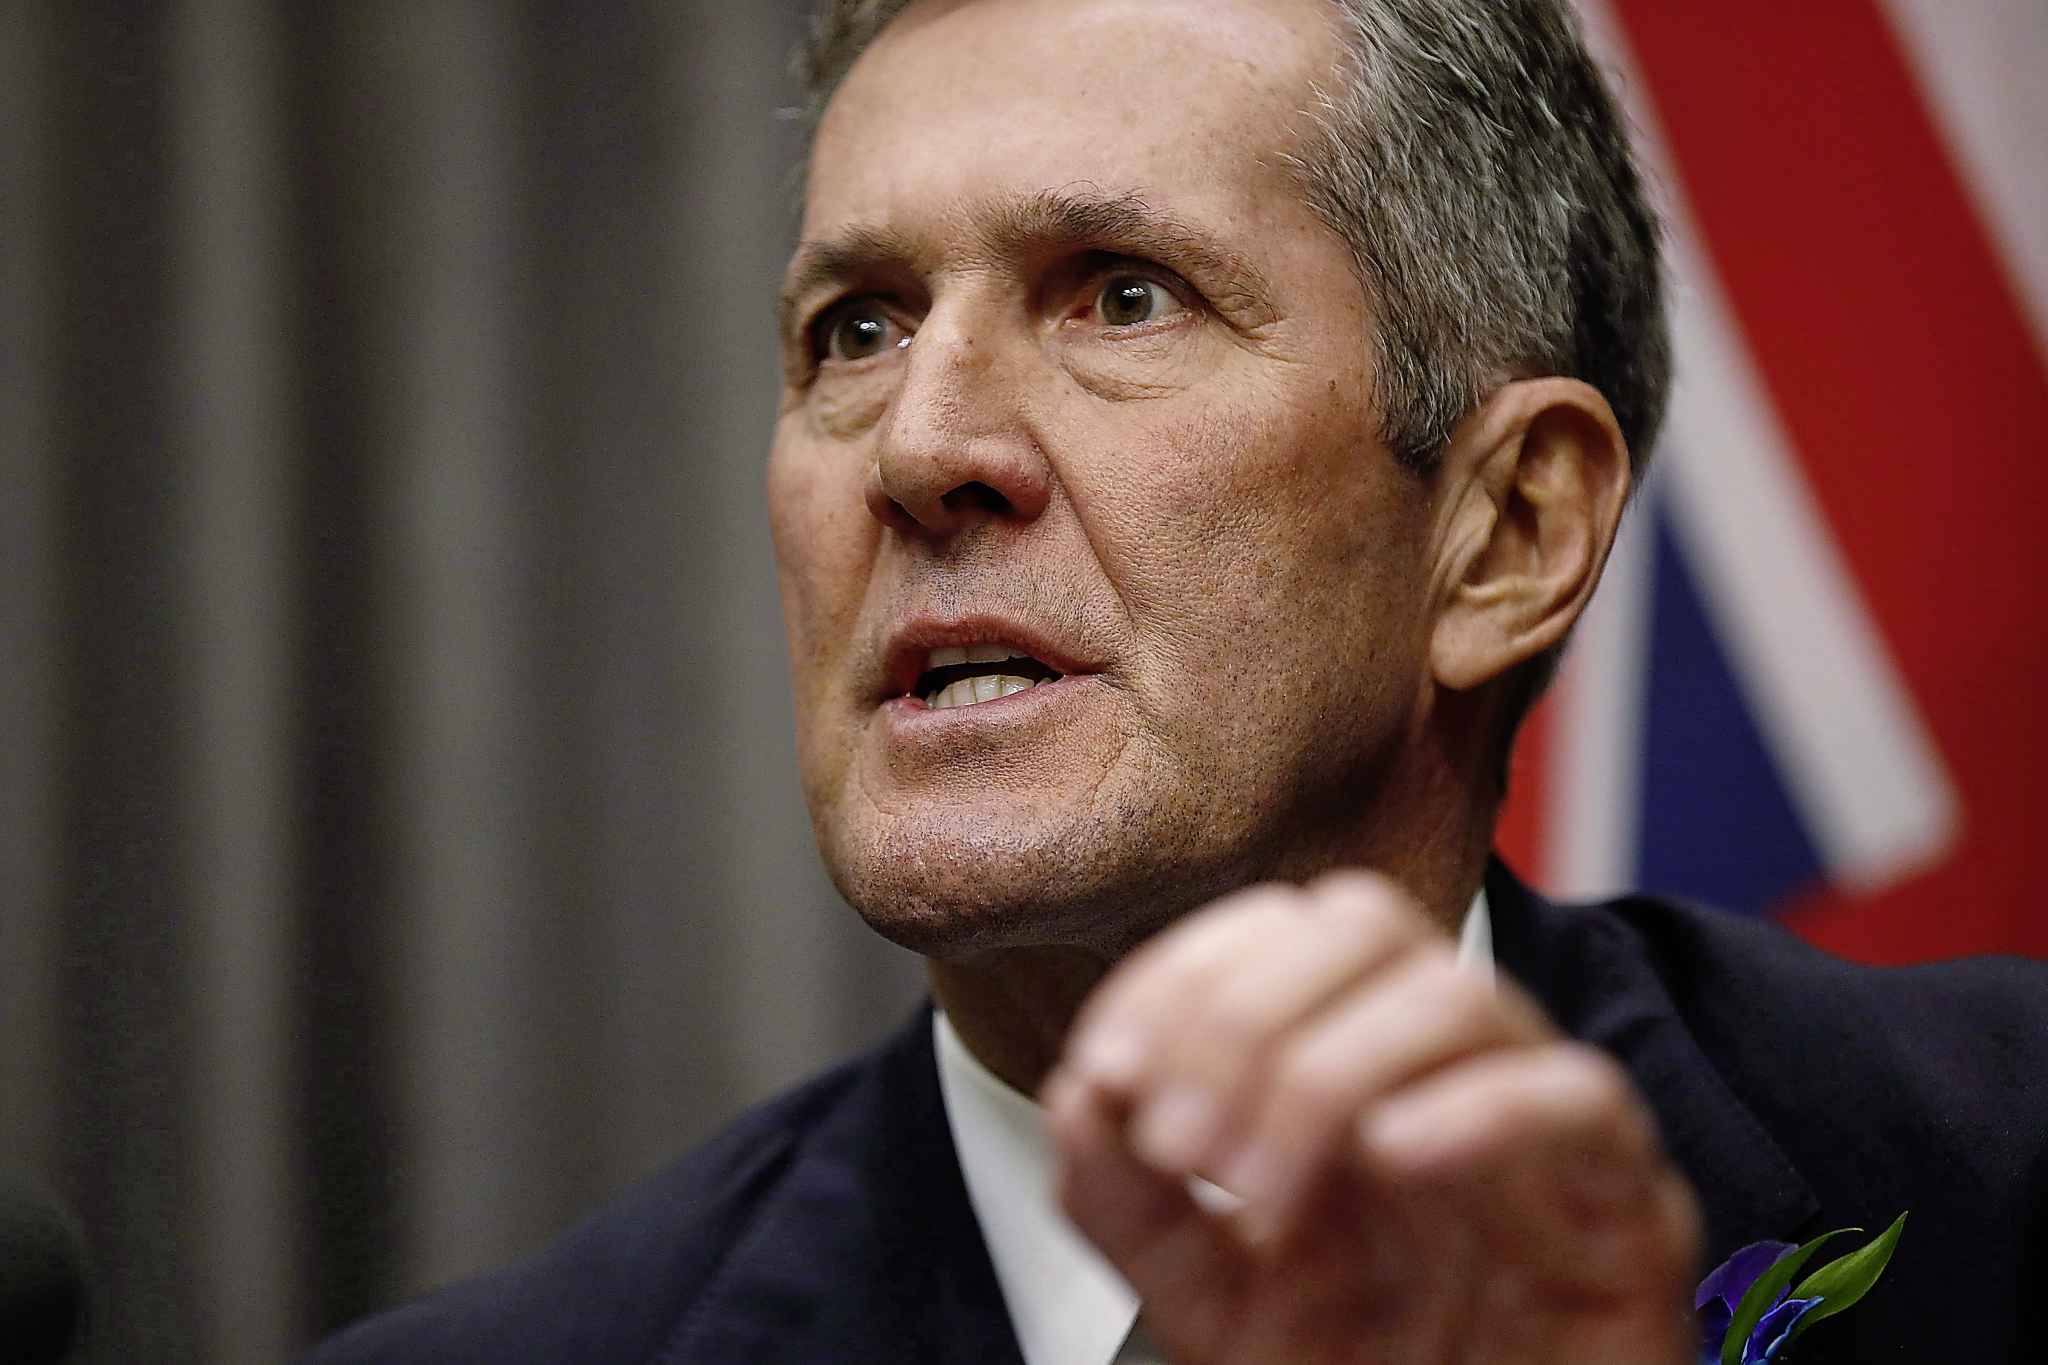 Manitoba Premier Brian Pallister has chosen to fulfil his promise to cut the PST by one percentage point. The measure, which takes effect July 1, was announced in the the provincial budget.